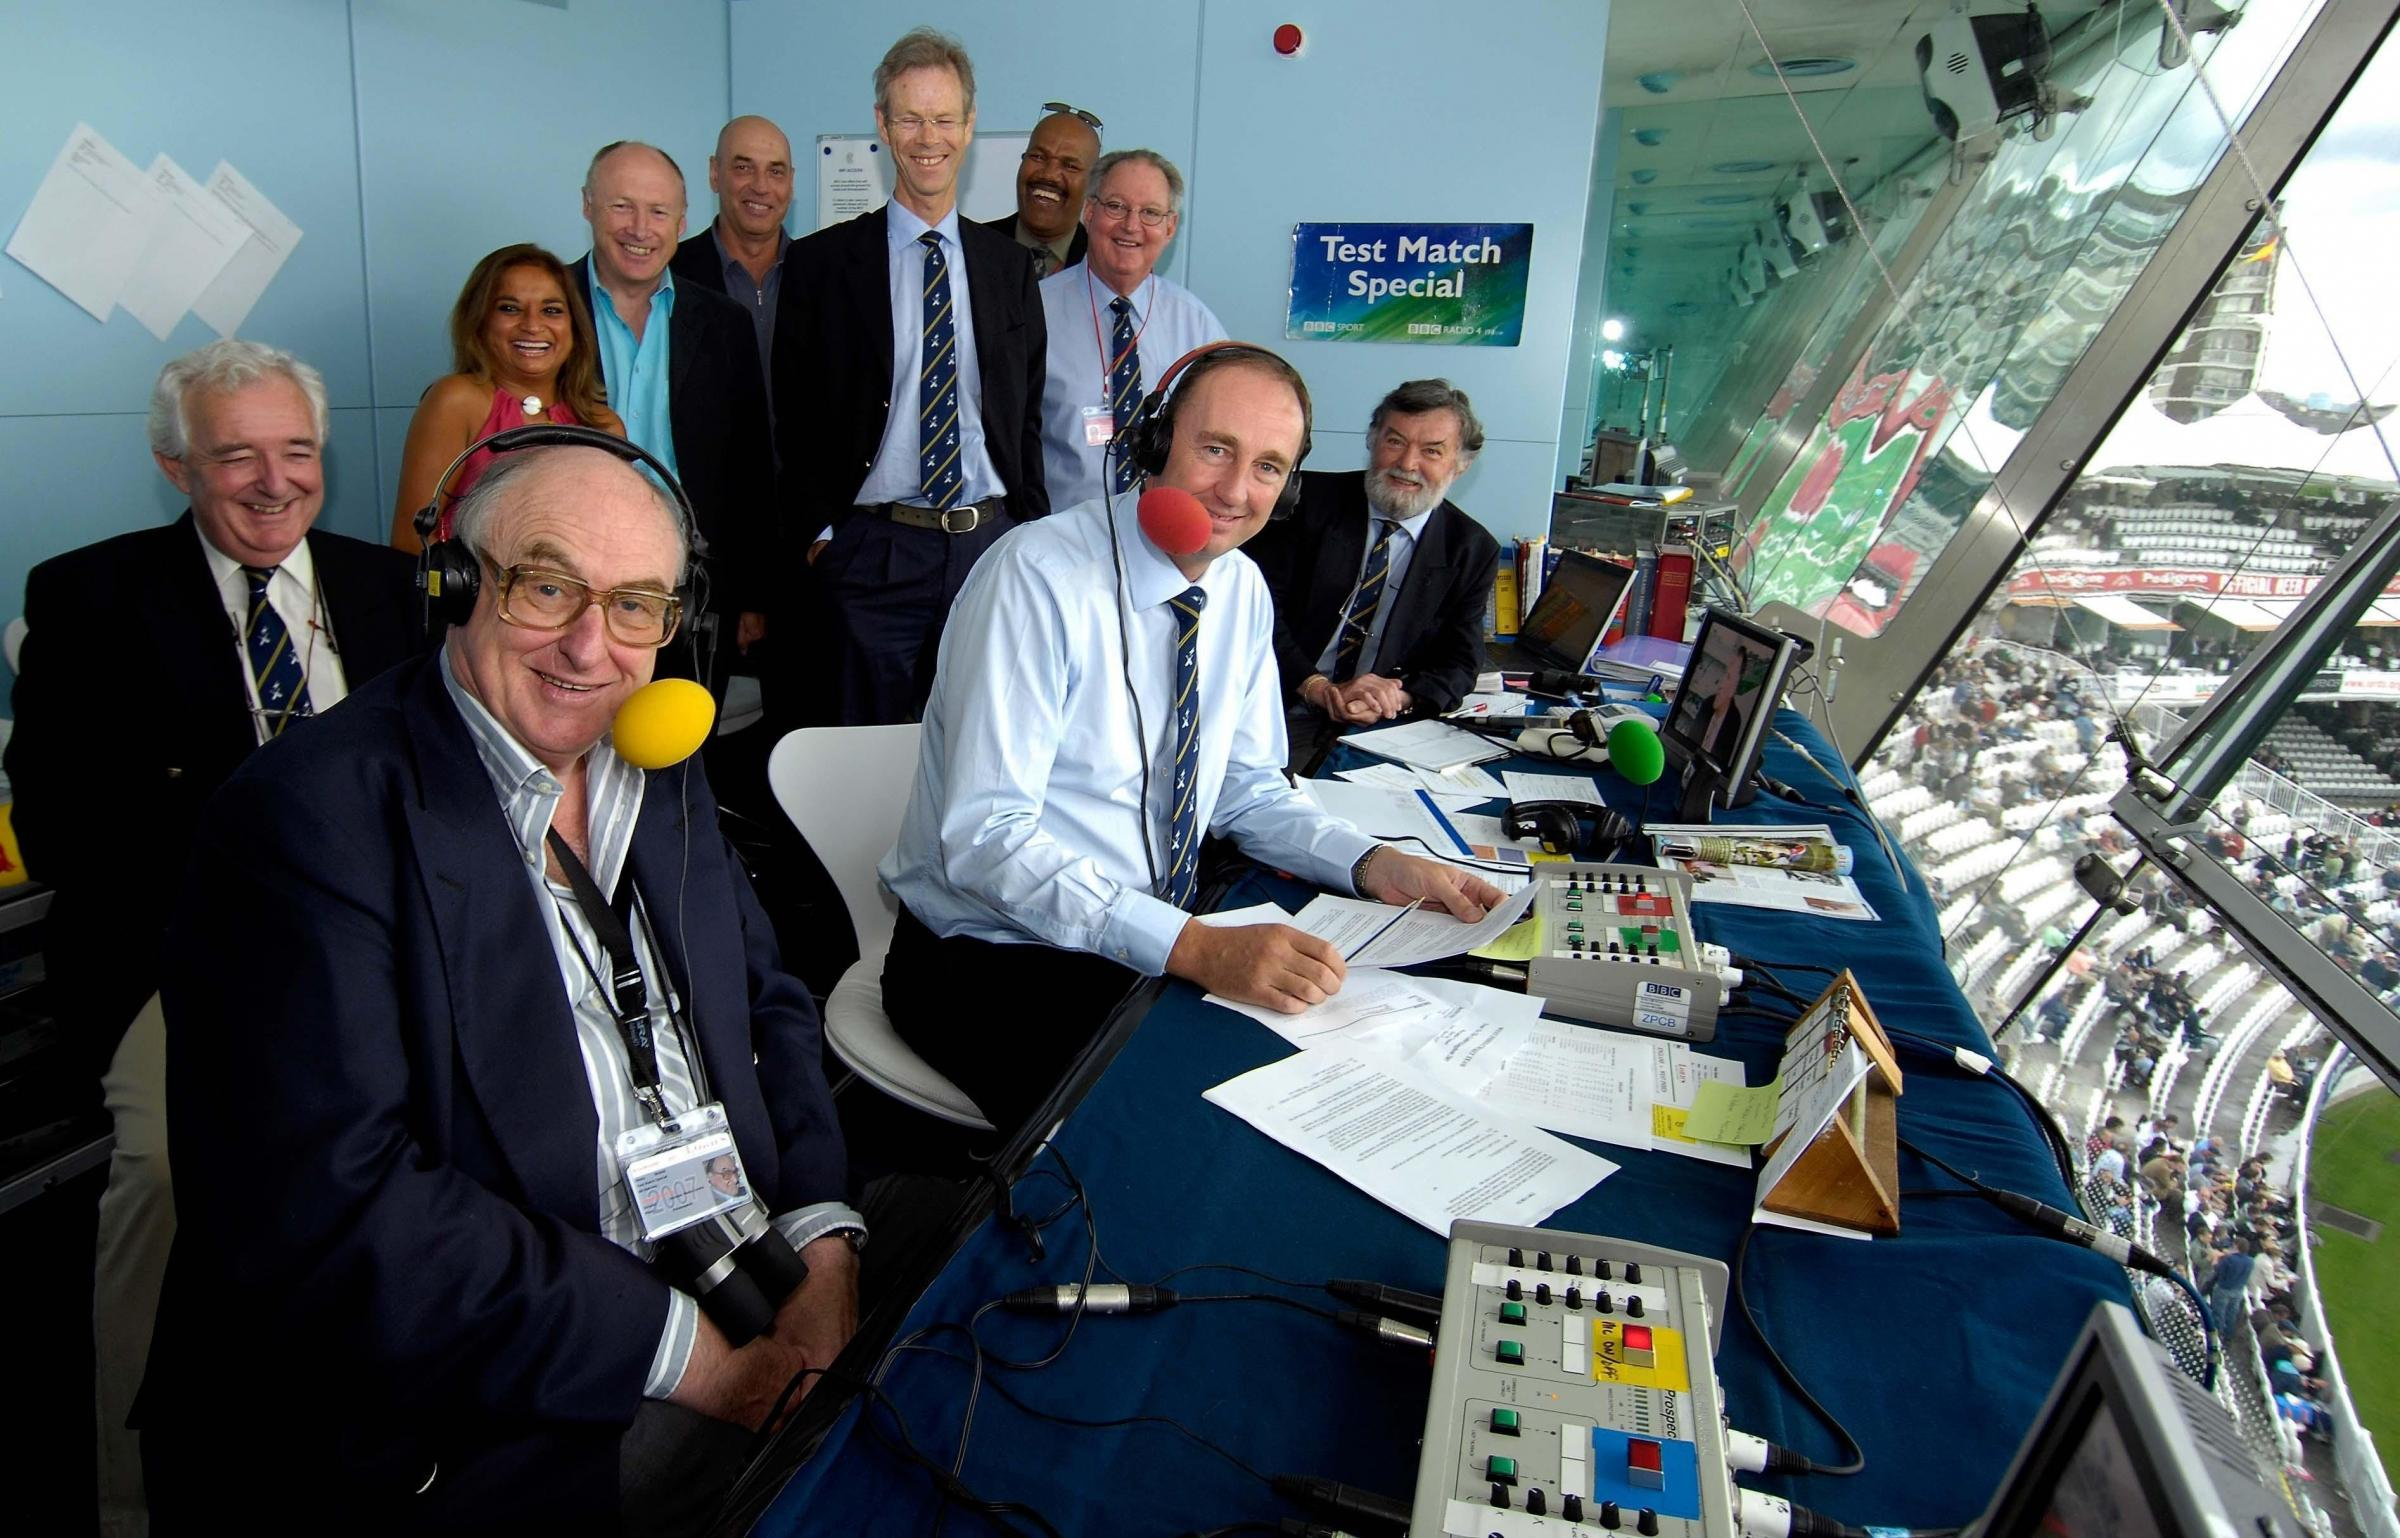 Jonathan Agnew, centre, and members of the BBC Radio Test Match Special team